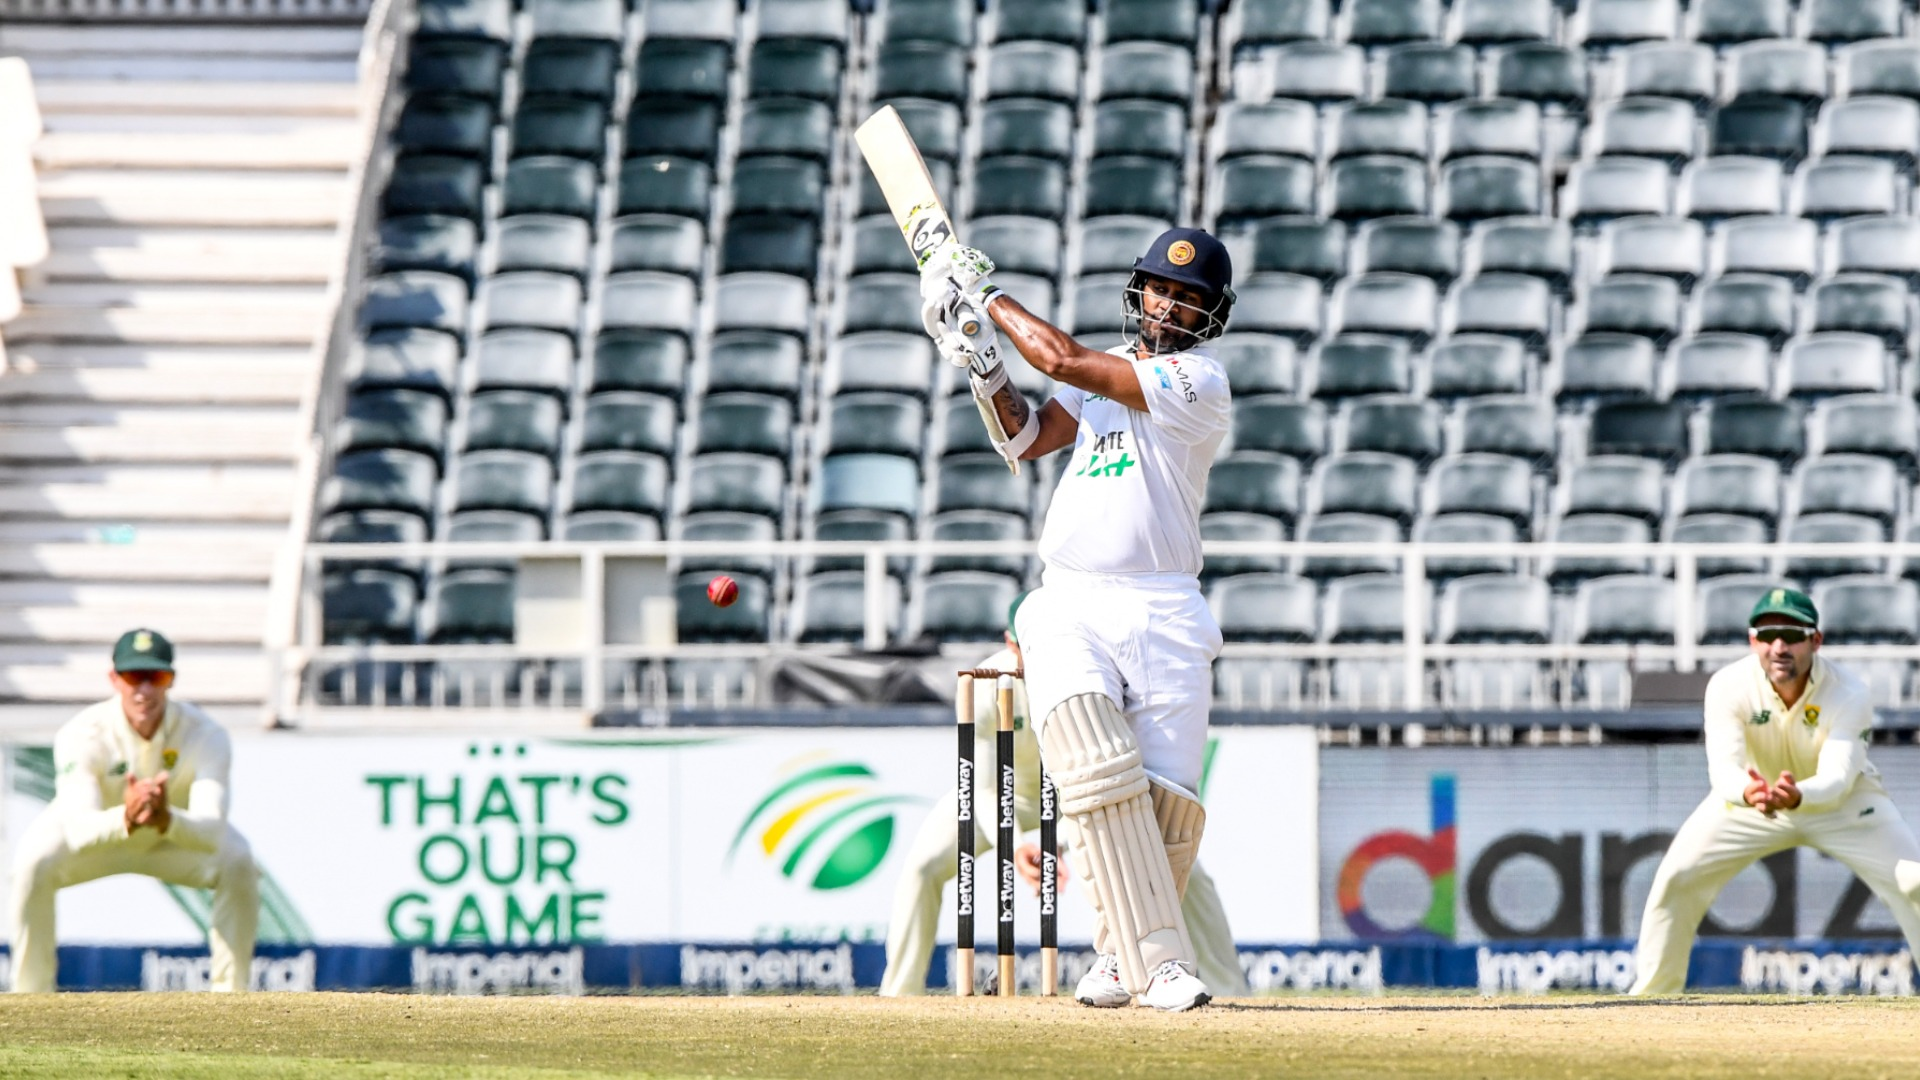 Sri Lanka have won only one of their past seven Tests, but captain Dimuth Karunaratne fancies their chances against England.